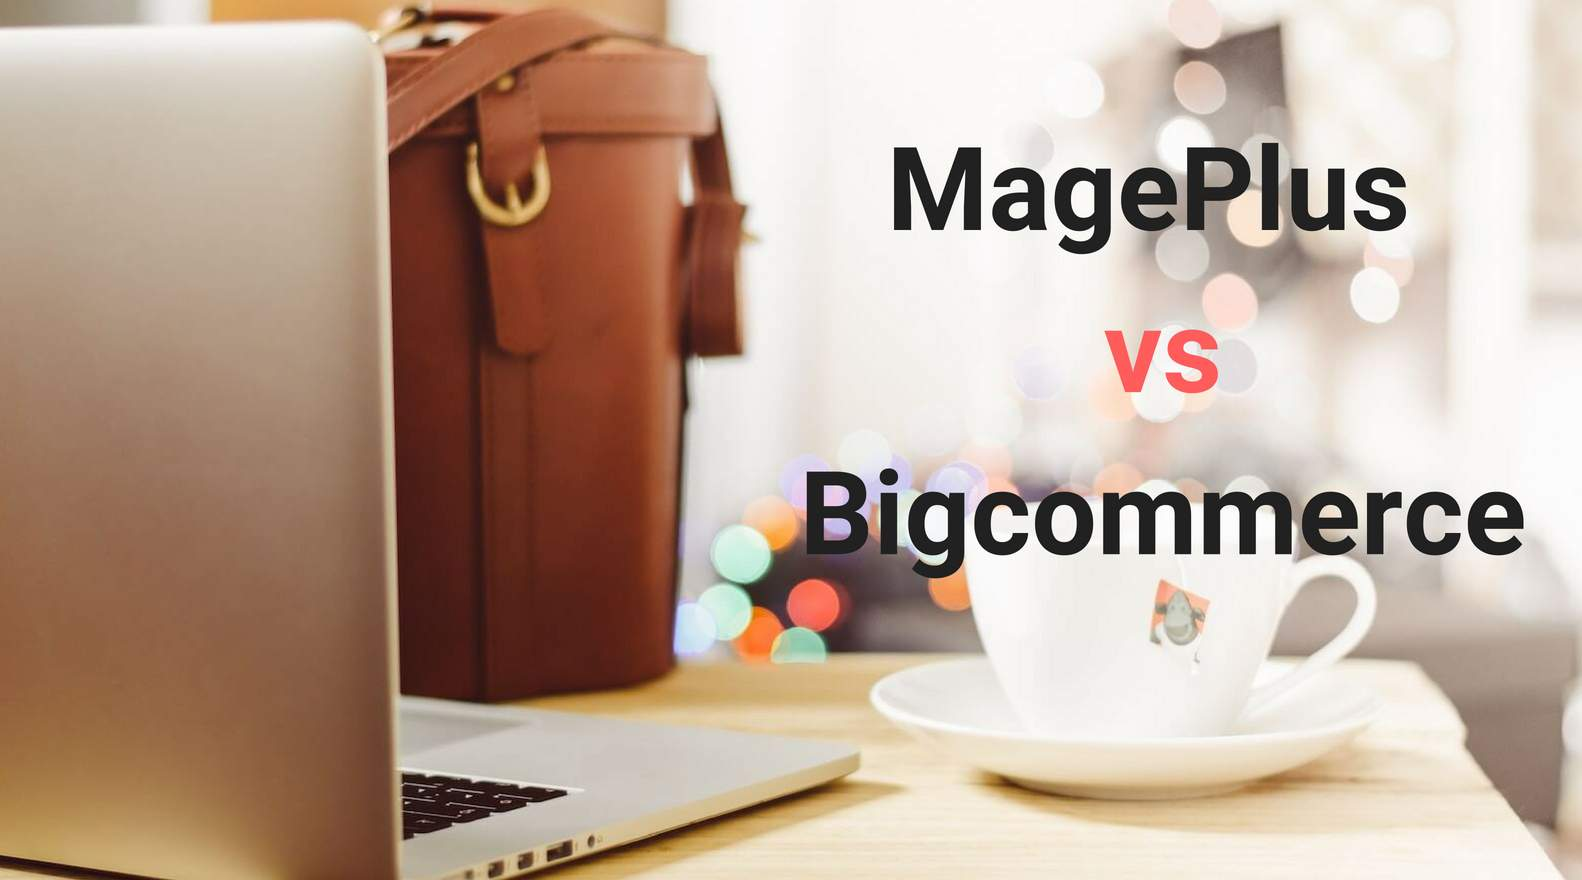 MagePlus vs Bigcommerce